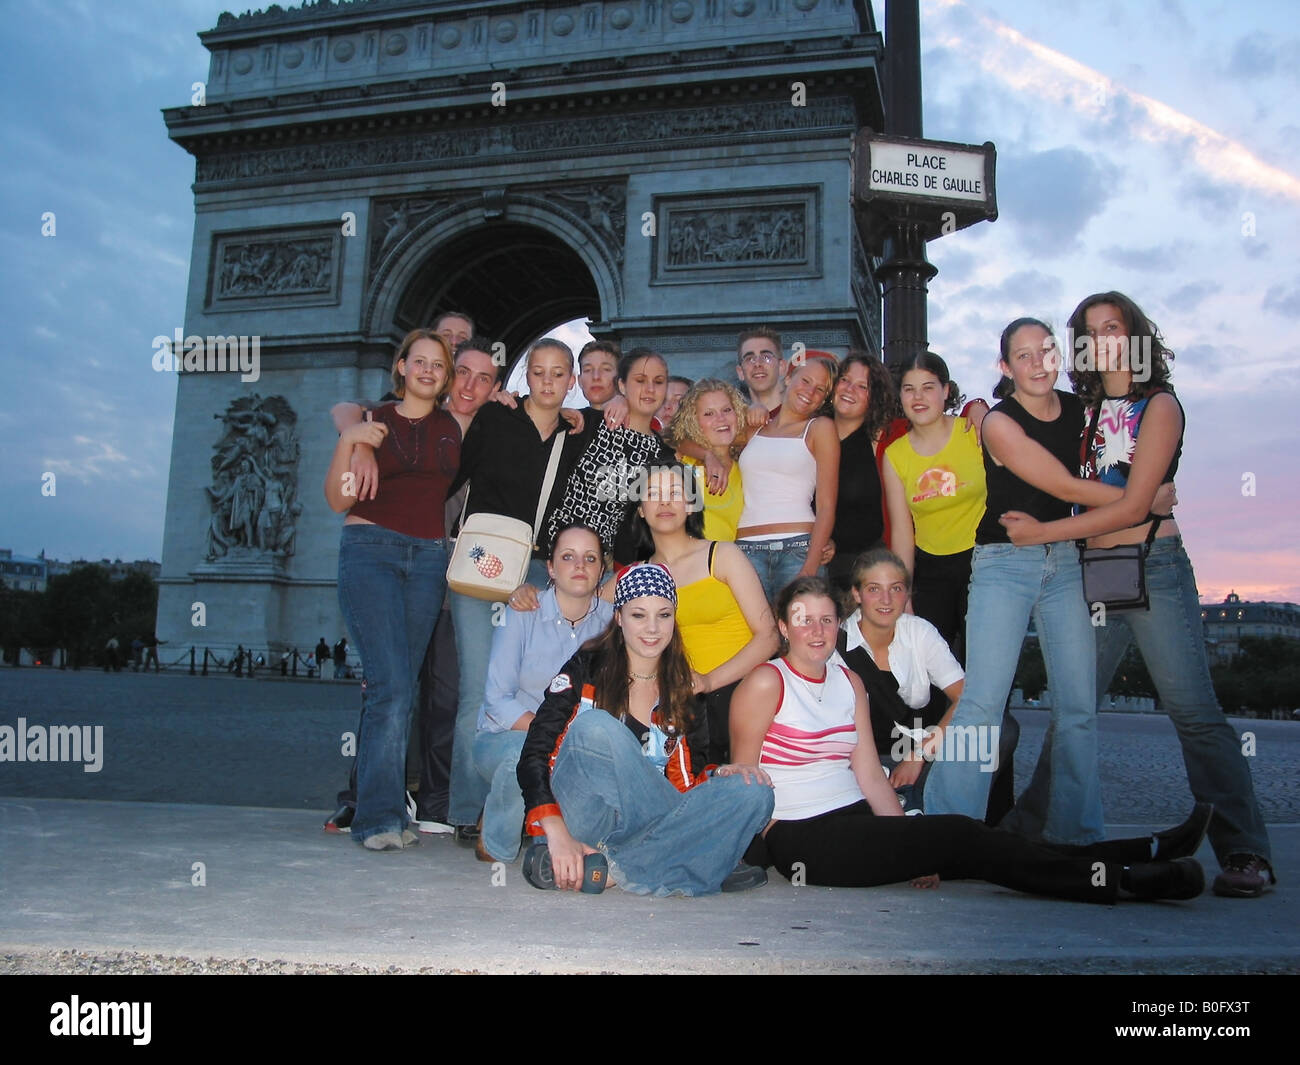 snap shot of school group posing in front of Arc de Triomphe Paris France at dusk - Stock Image